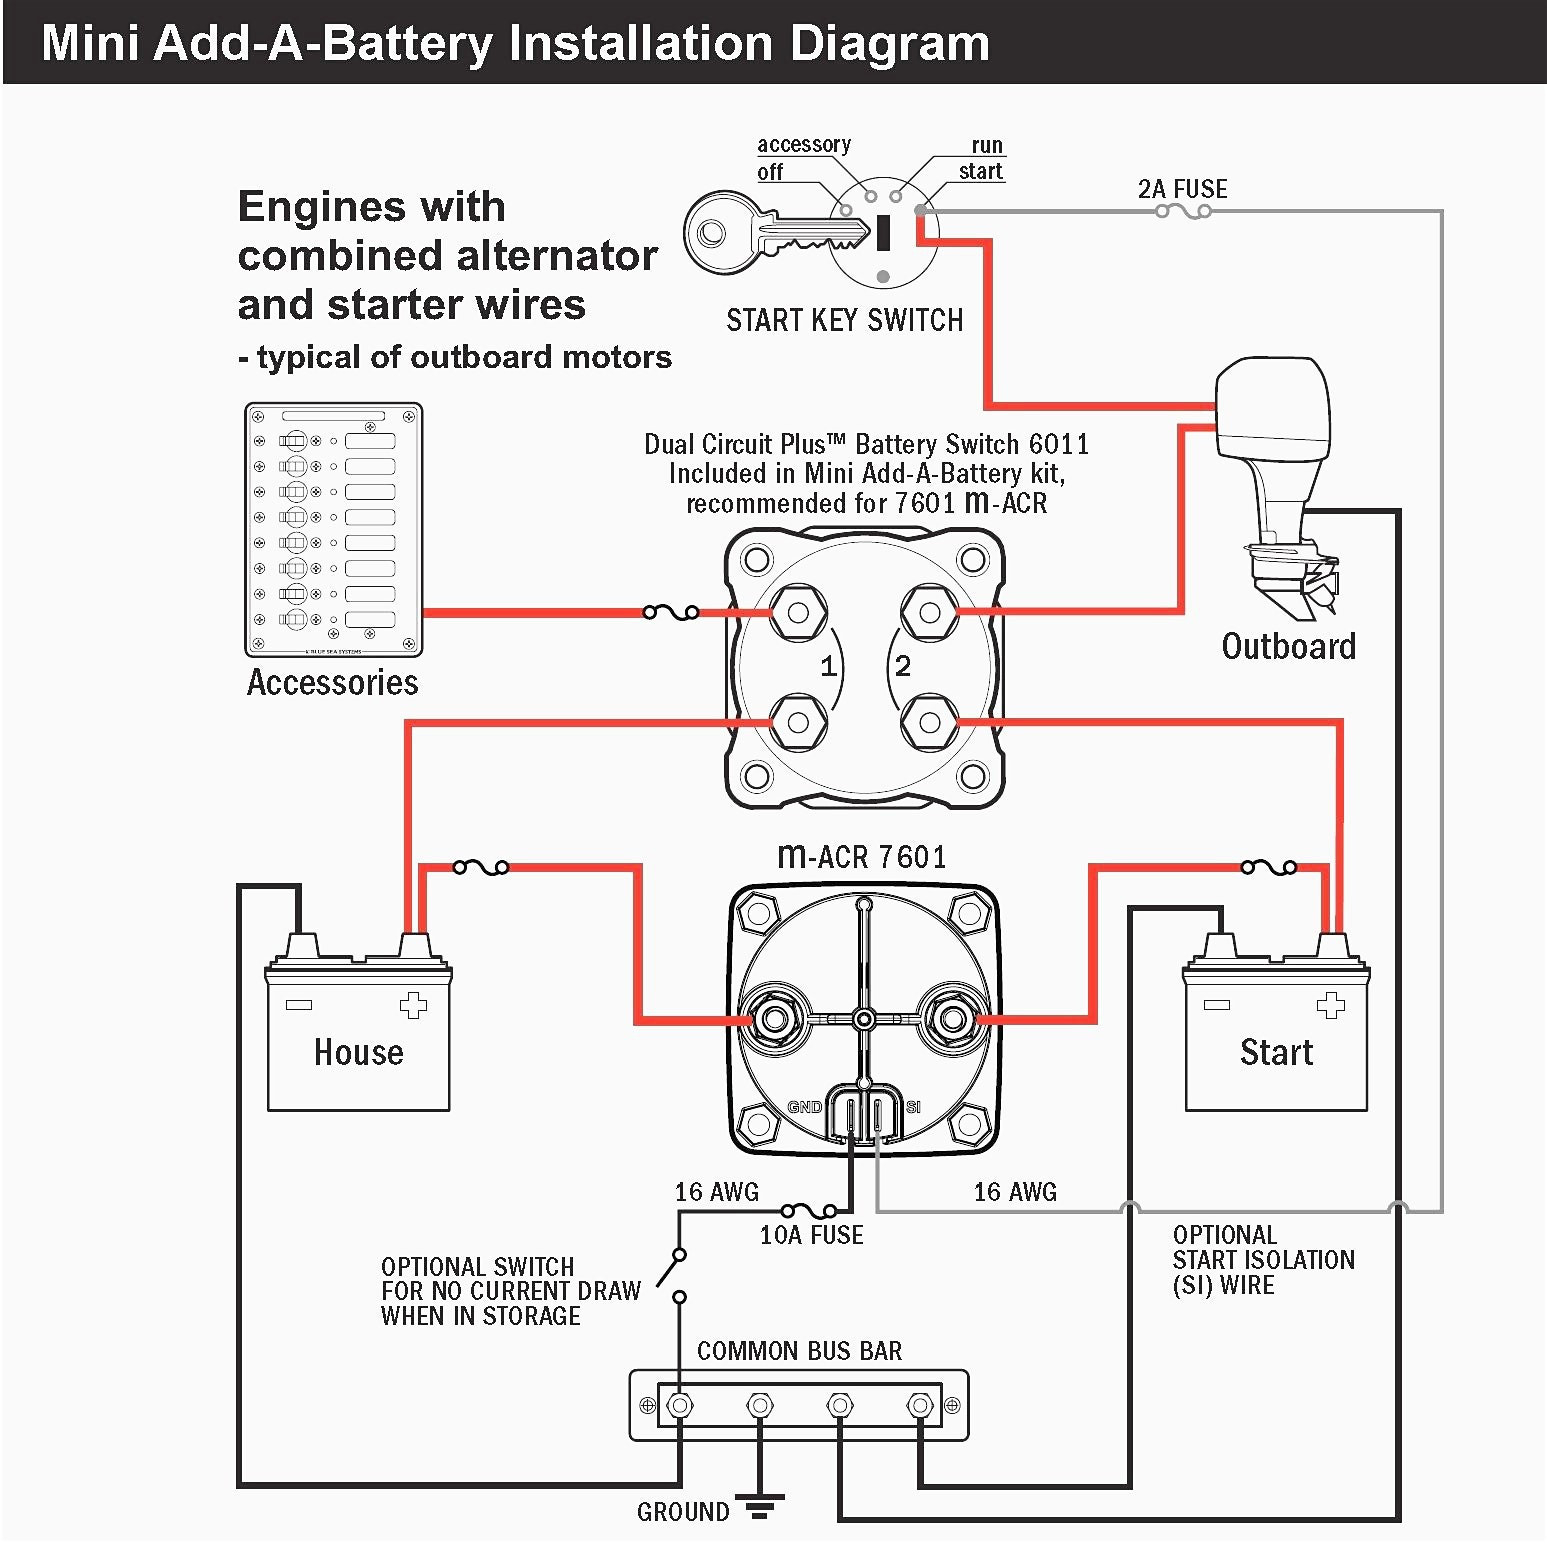 rv battery disconnect switch wiring diagram Download-Wiring Diagram For Alternator To Battery Inspirationa Awesome Rv Battery Disconnect Switch Wiring Diagram Wiring 14-j